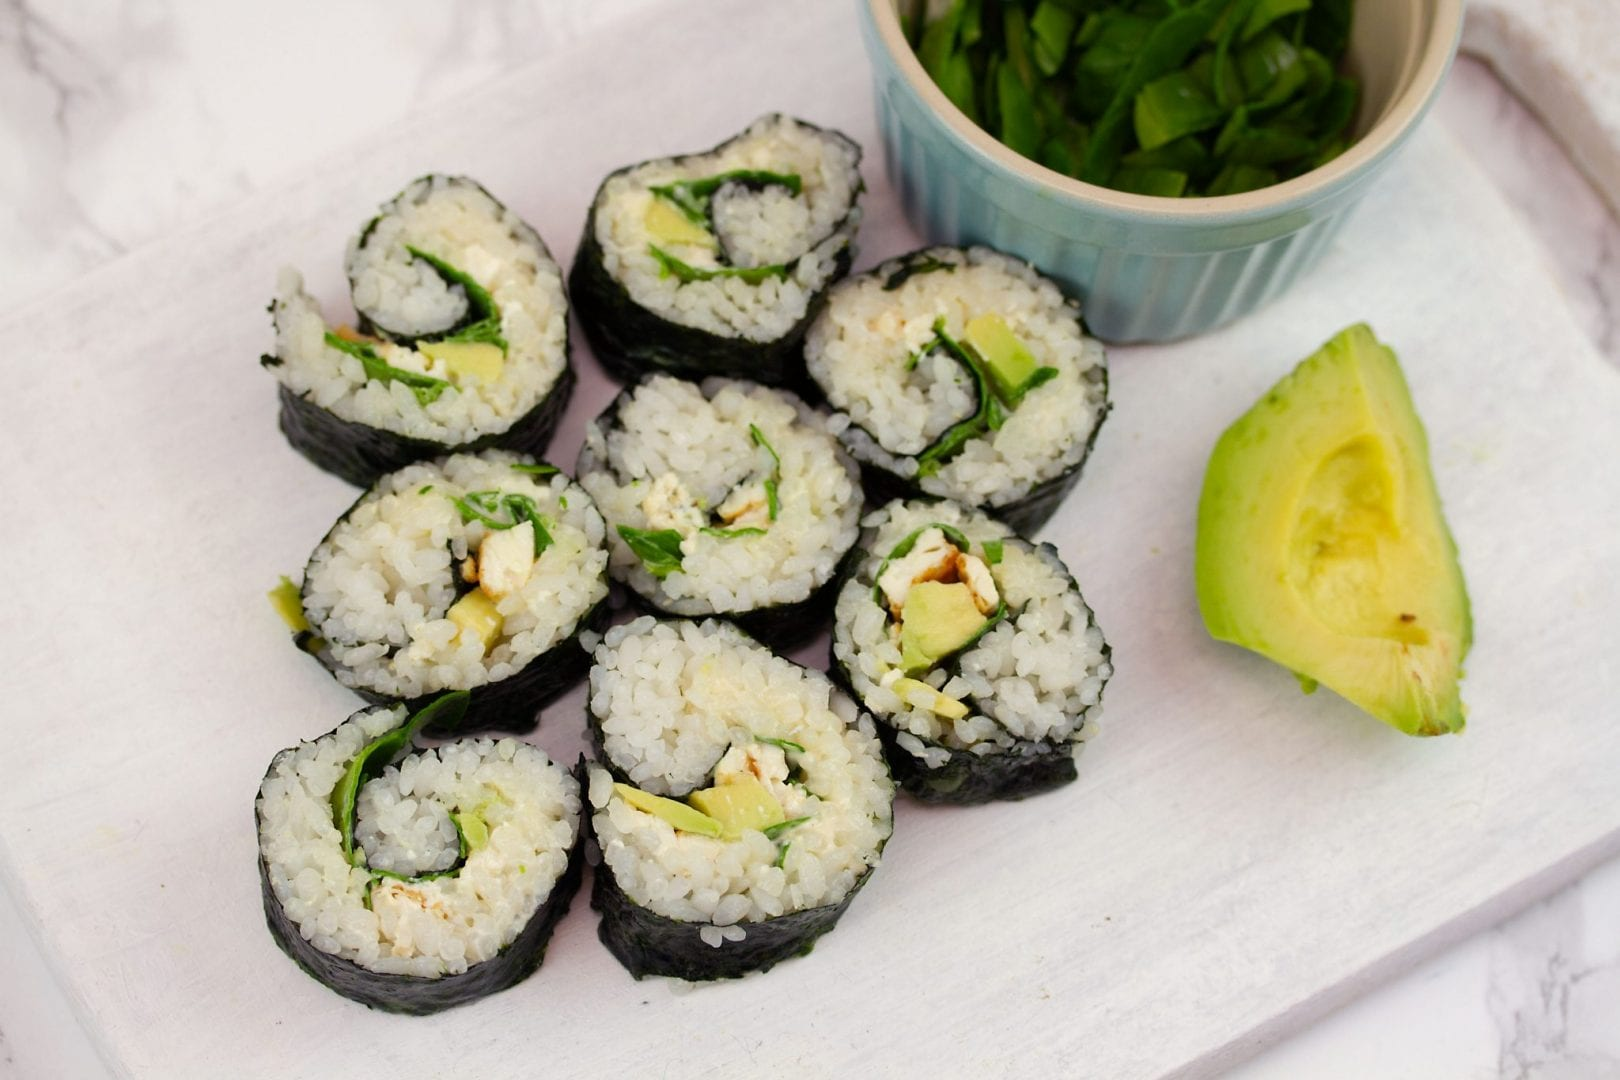 kids sushi - vegetarian sushi - sushi for kids - easy sushi for kids